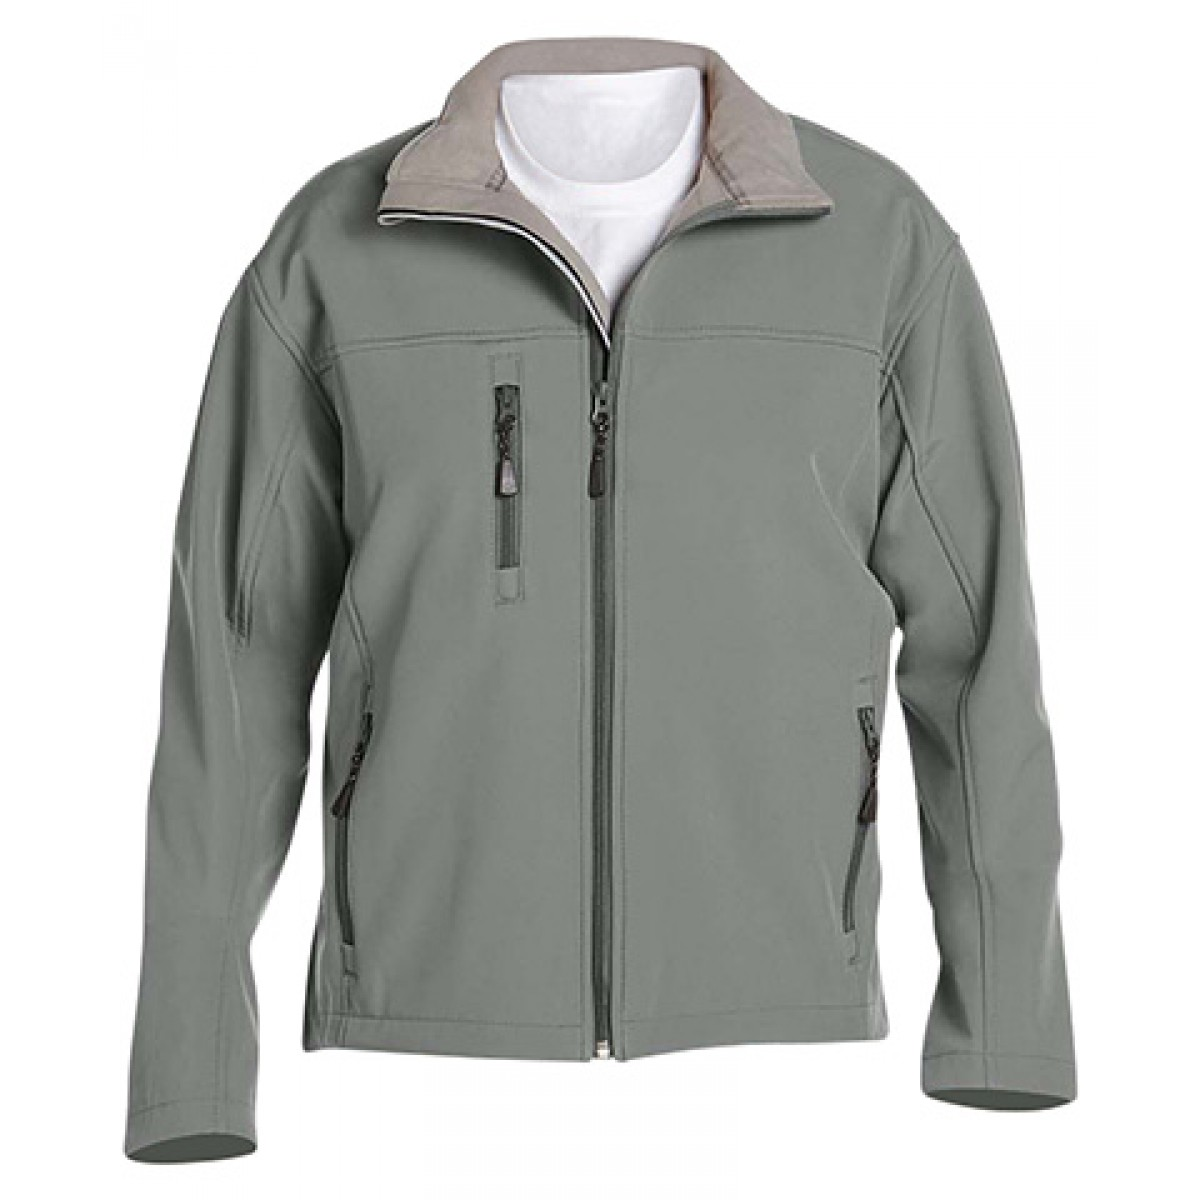 Men's Soft Shell Jacket-Charocal-4XL